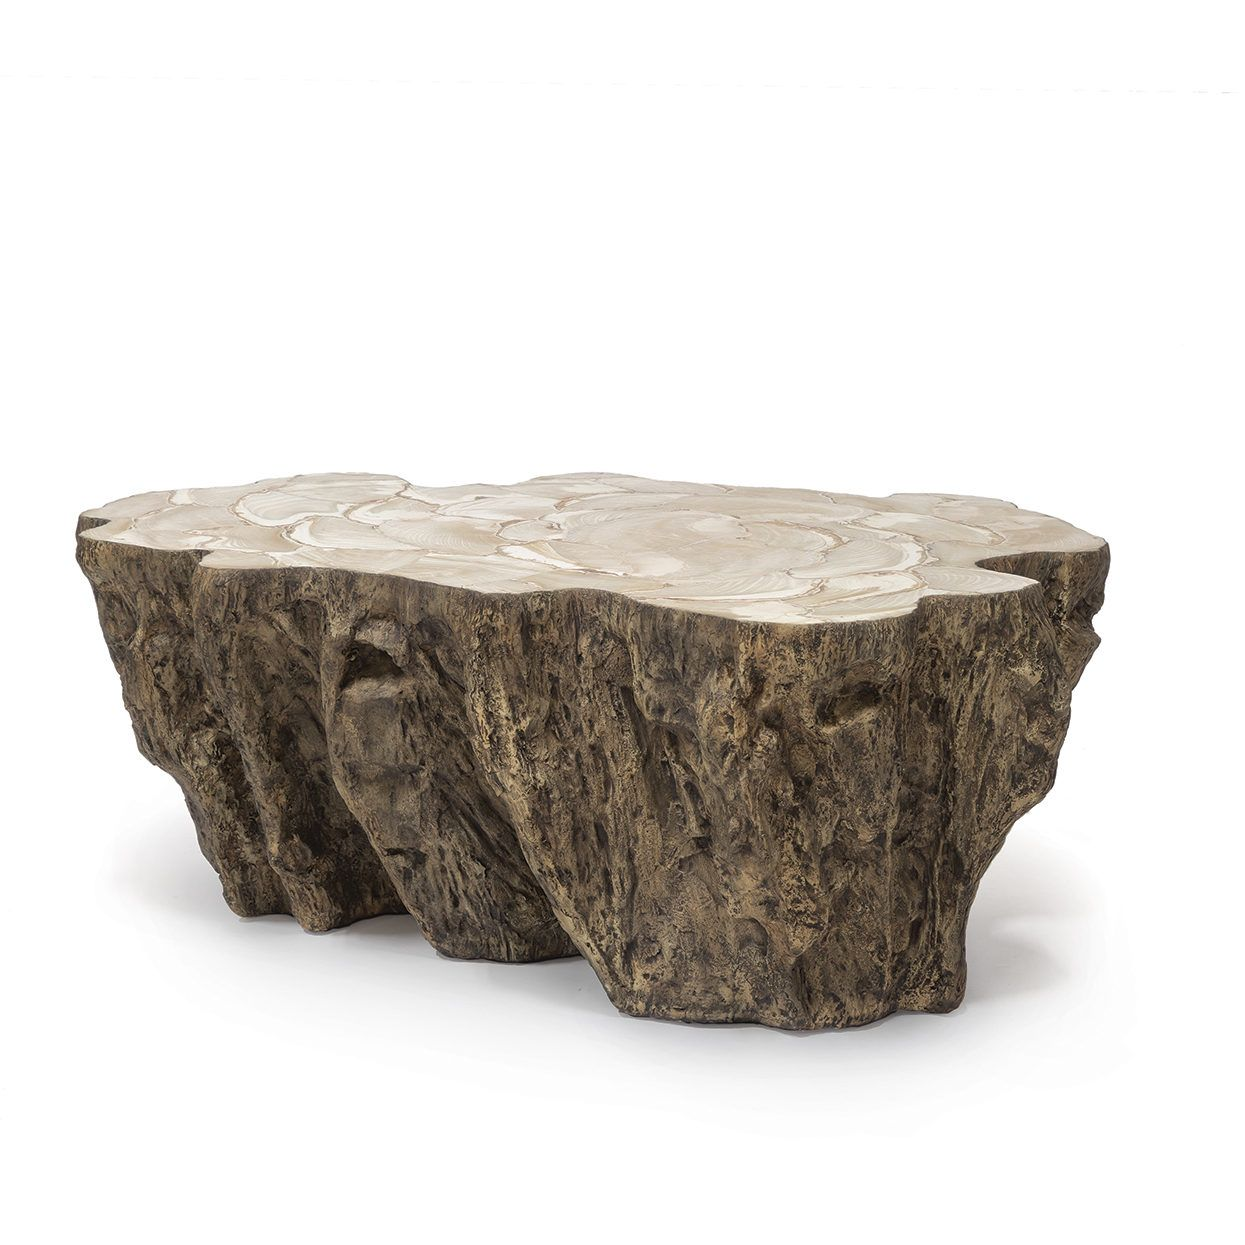 Chloe fossilized clam lava coffee table fred and kris florida trunk shaped clam shell lava coffee table stonecast top with inlaid fossilized clam shell on stonecast base made to resemble tree trunk each piece varies geotapseo Image collections